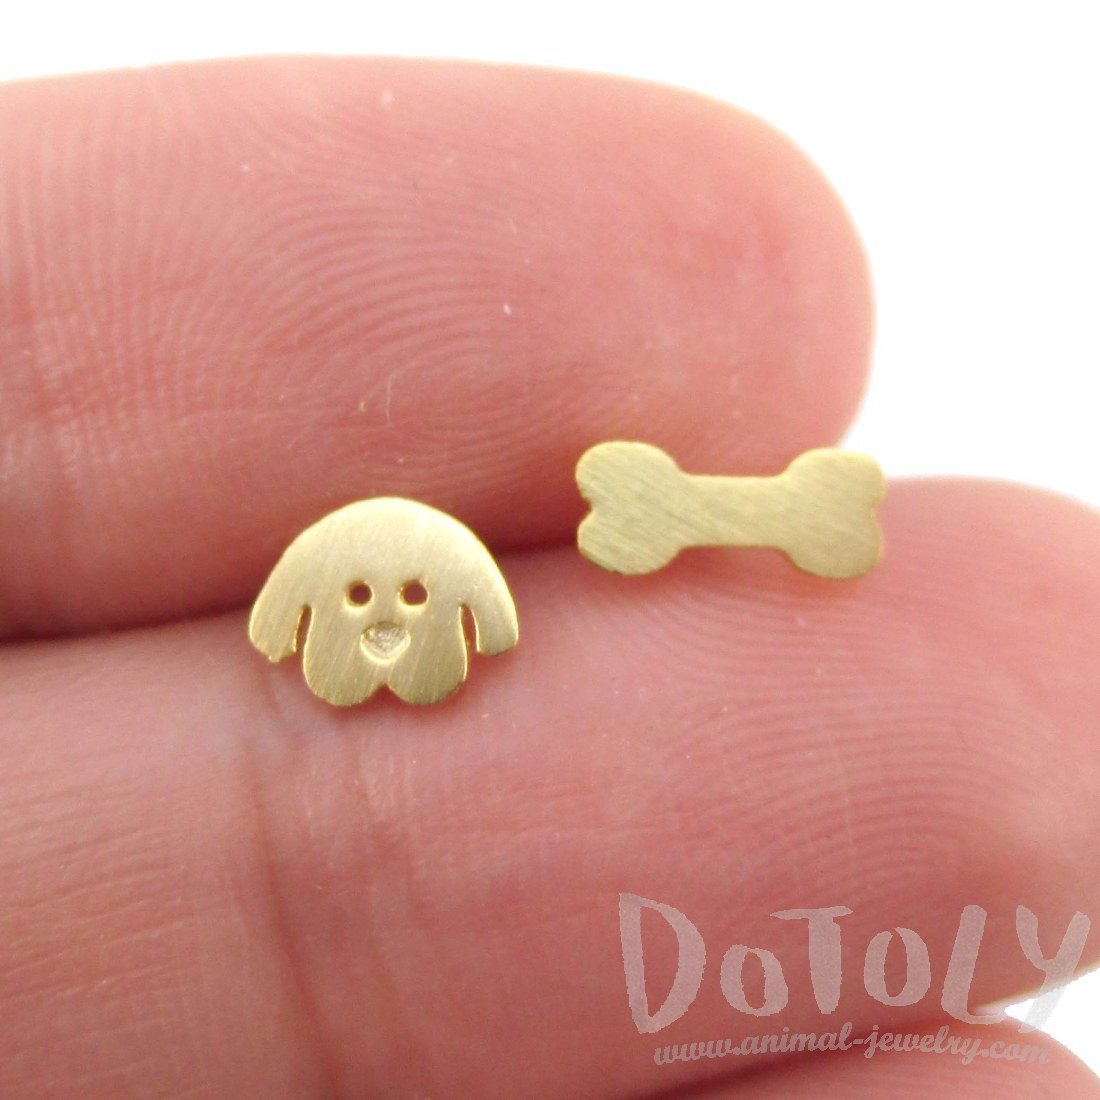 Cartoon Puppy Dog Face and Bone Shaped Stud Earrings in Gold | DOTOLY